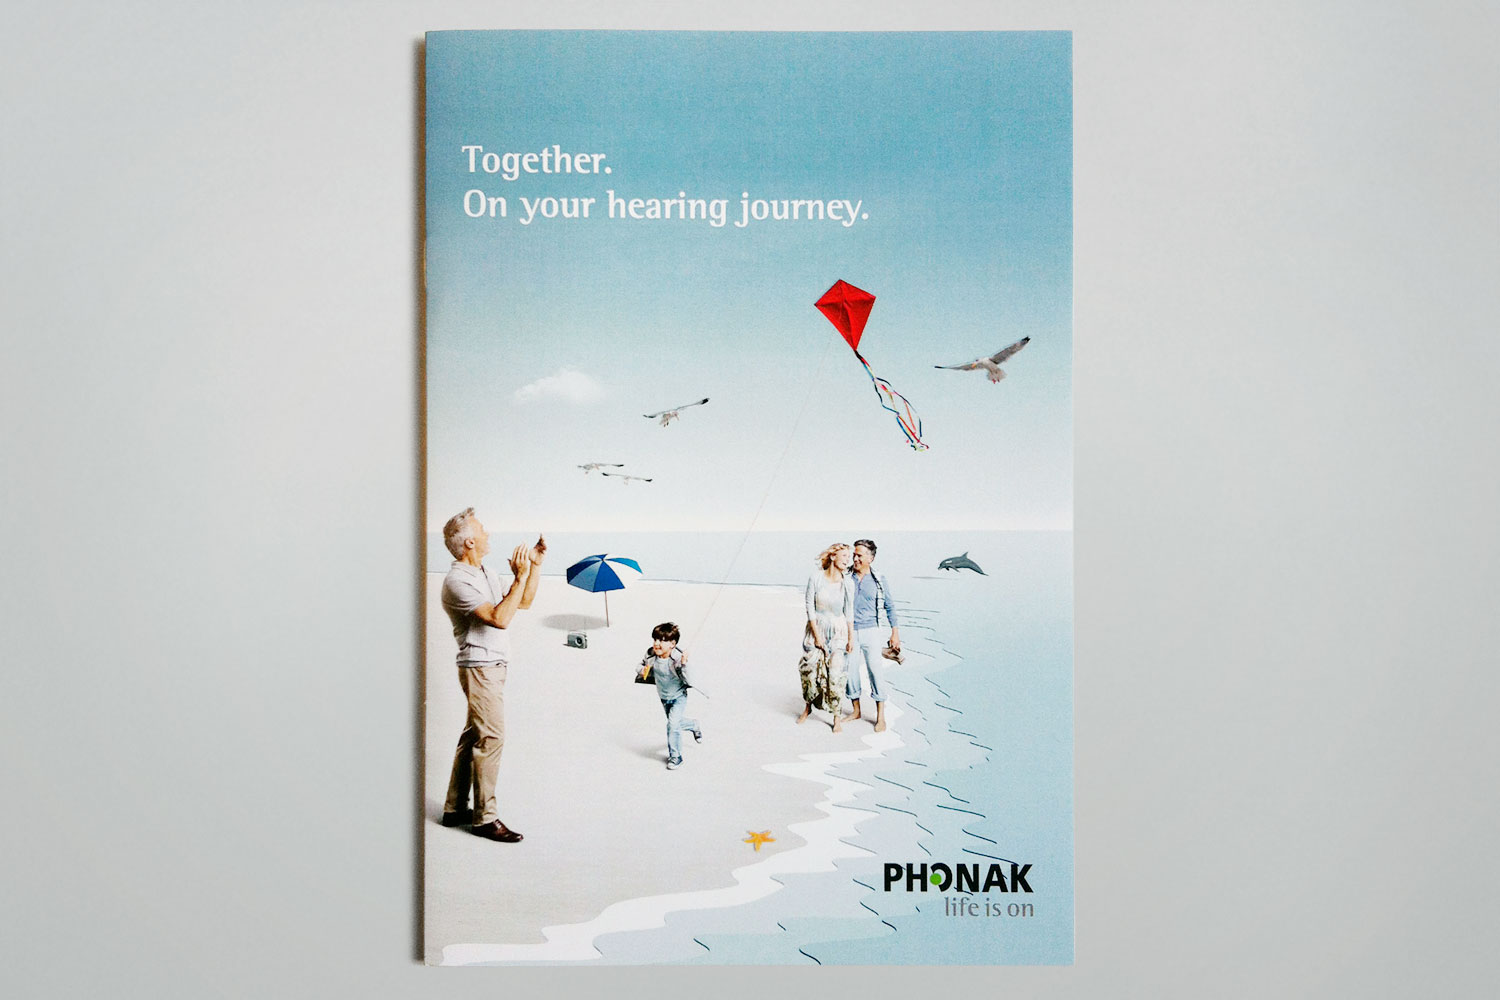 Phonak new brand platform